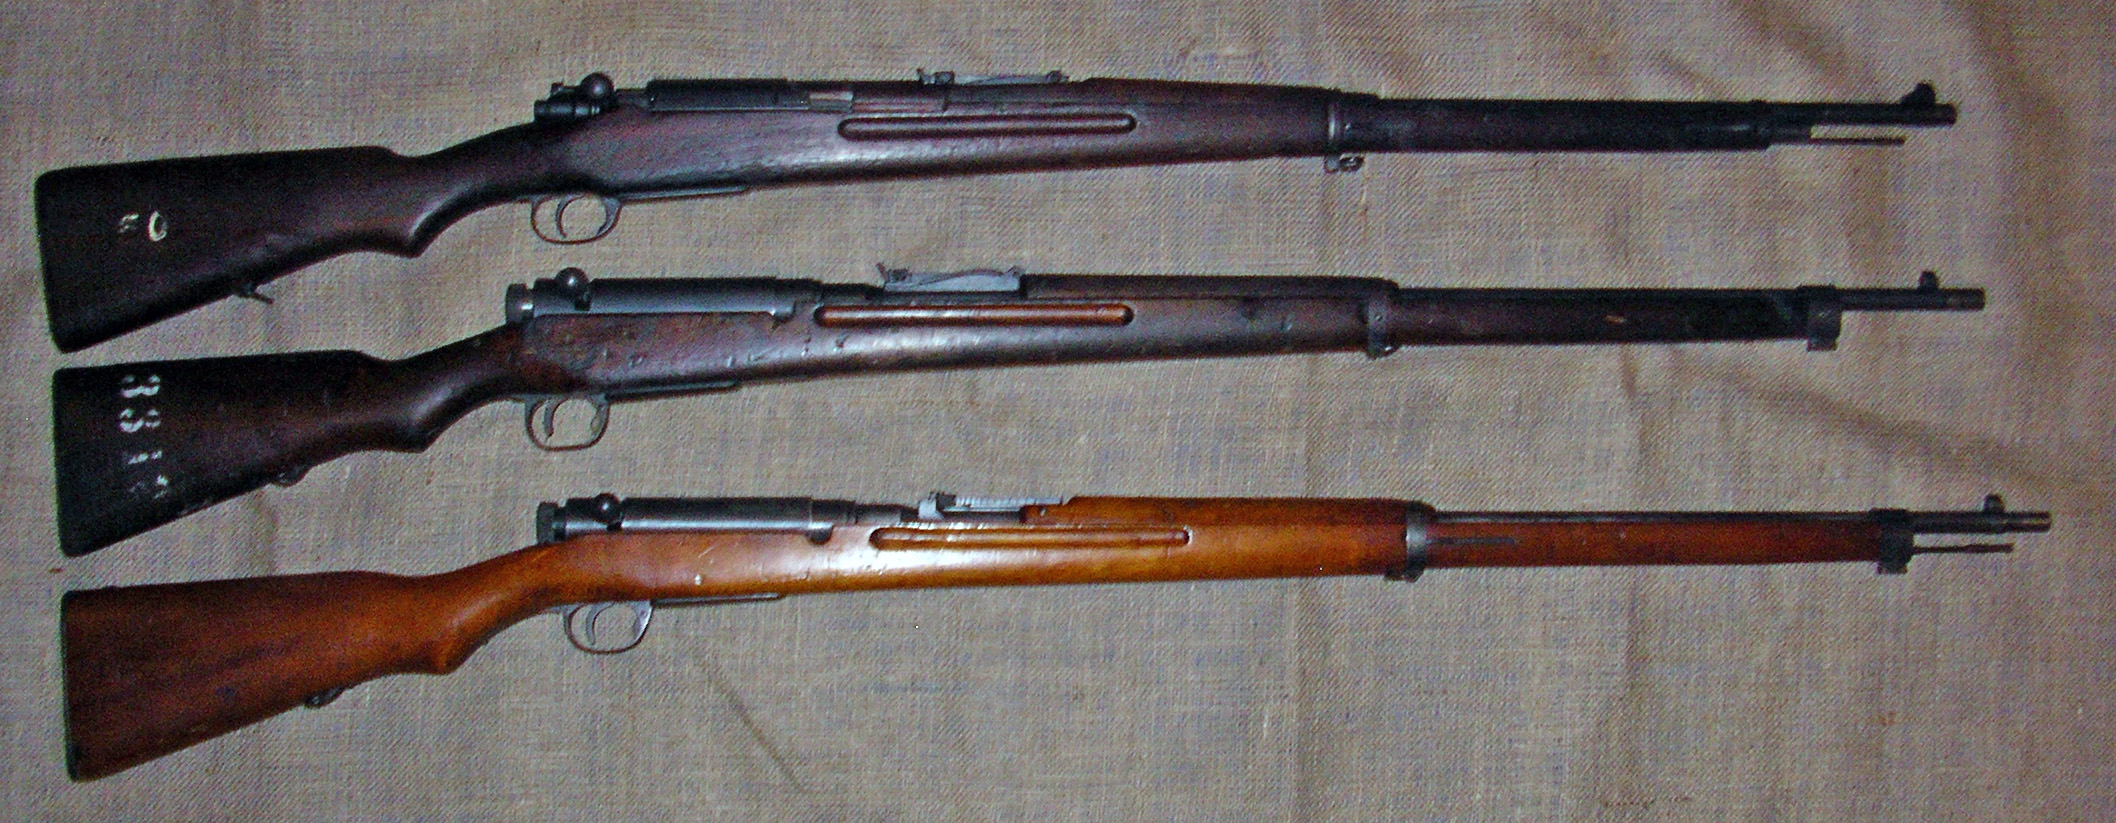 Siamese Mauser Followup – the Type 66 Rifle – Forgotten Weapons